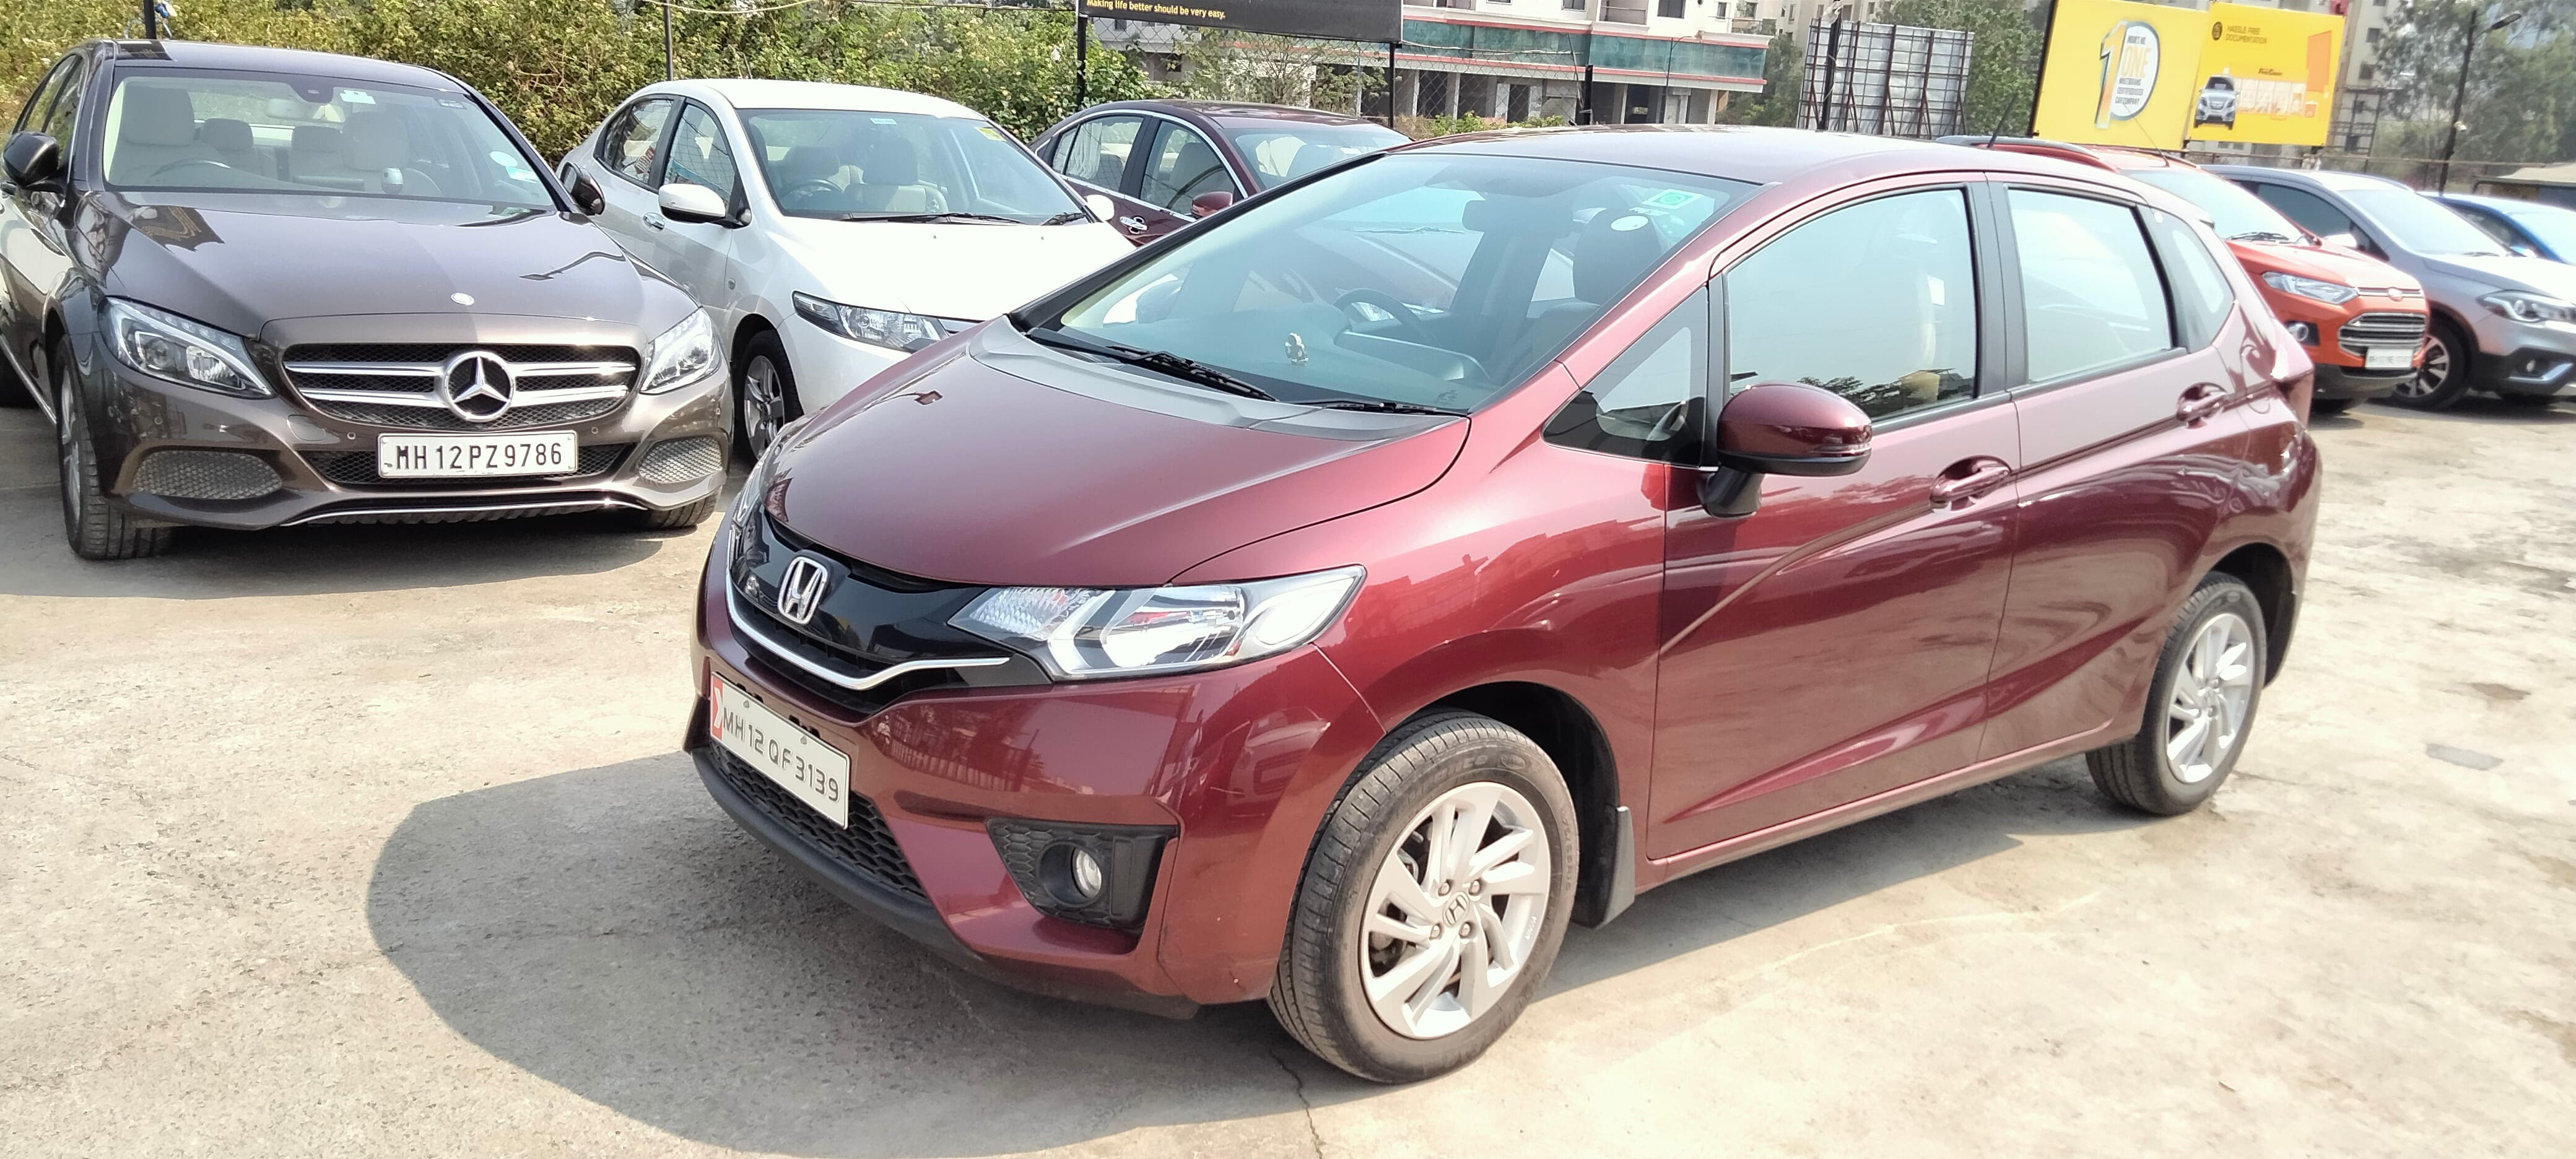 Honda Jazz 2018-2020 1.2 V AT i VTEC